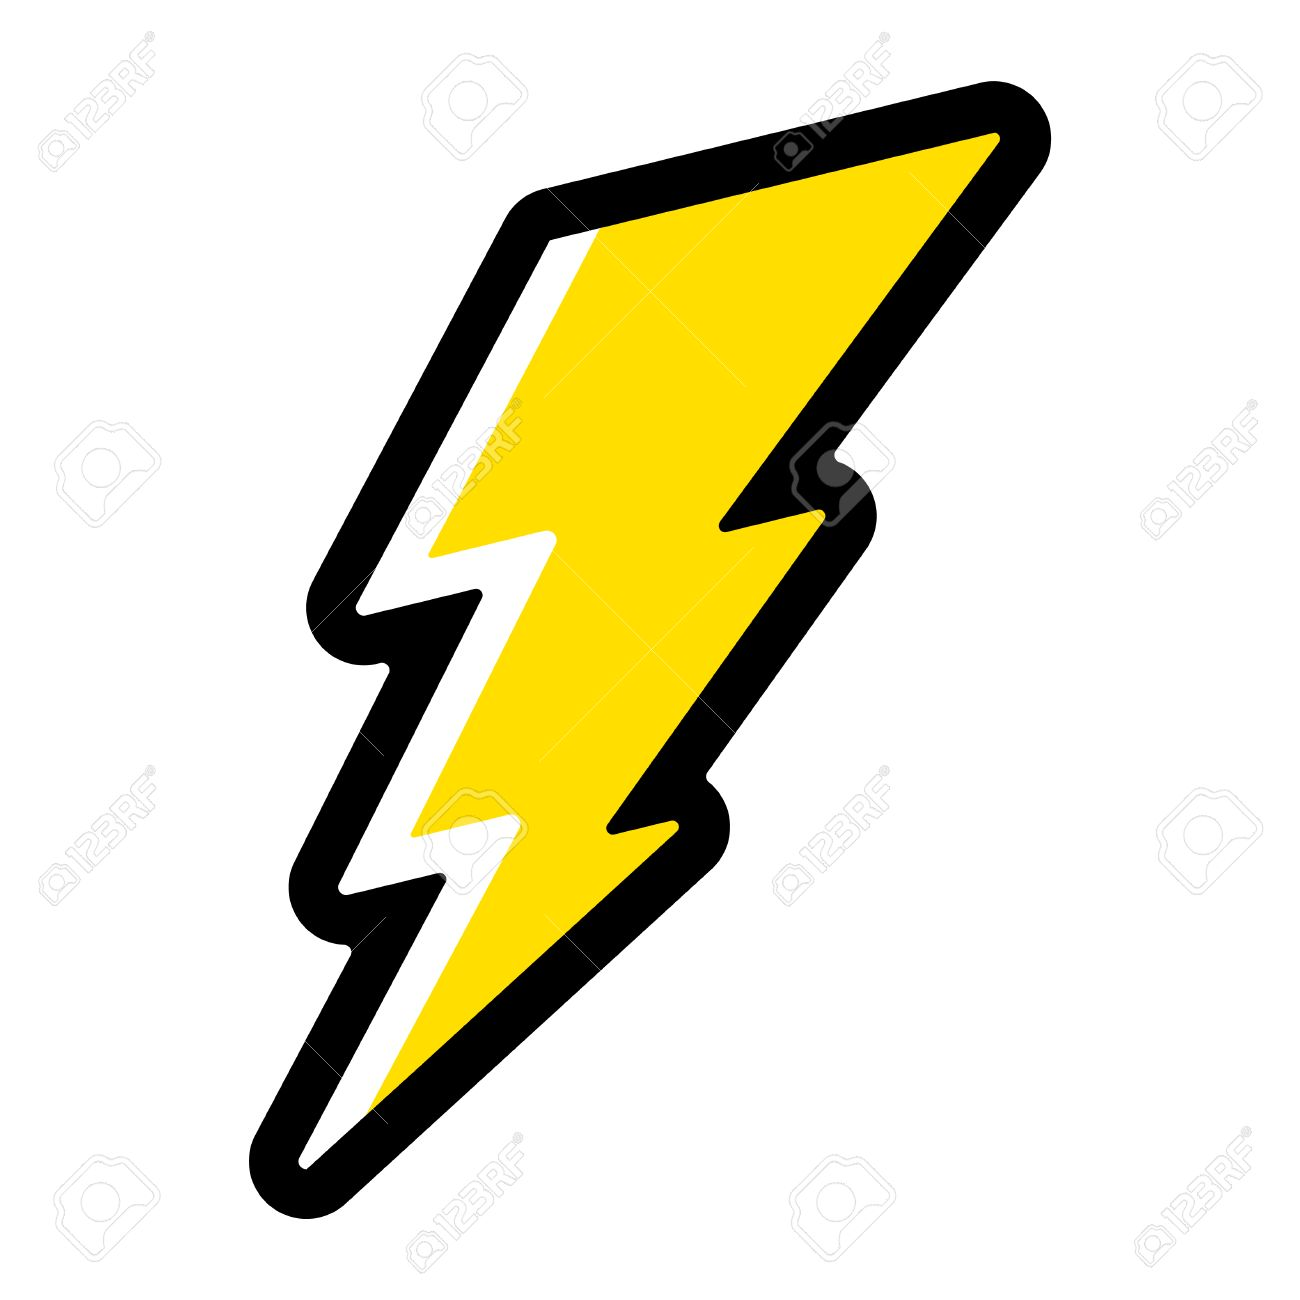 lightning bolt vector icon royalty free cliparts vectors and stock